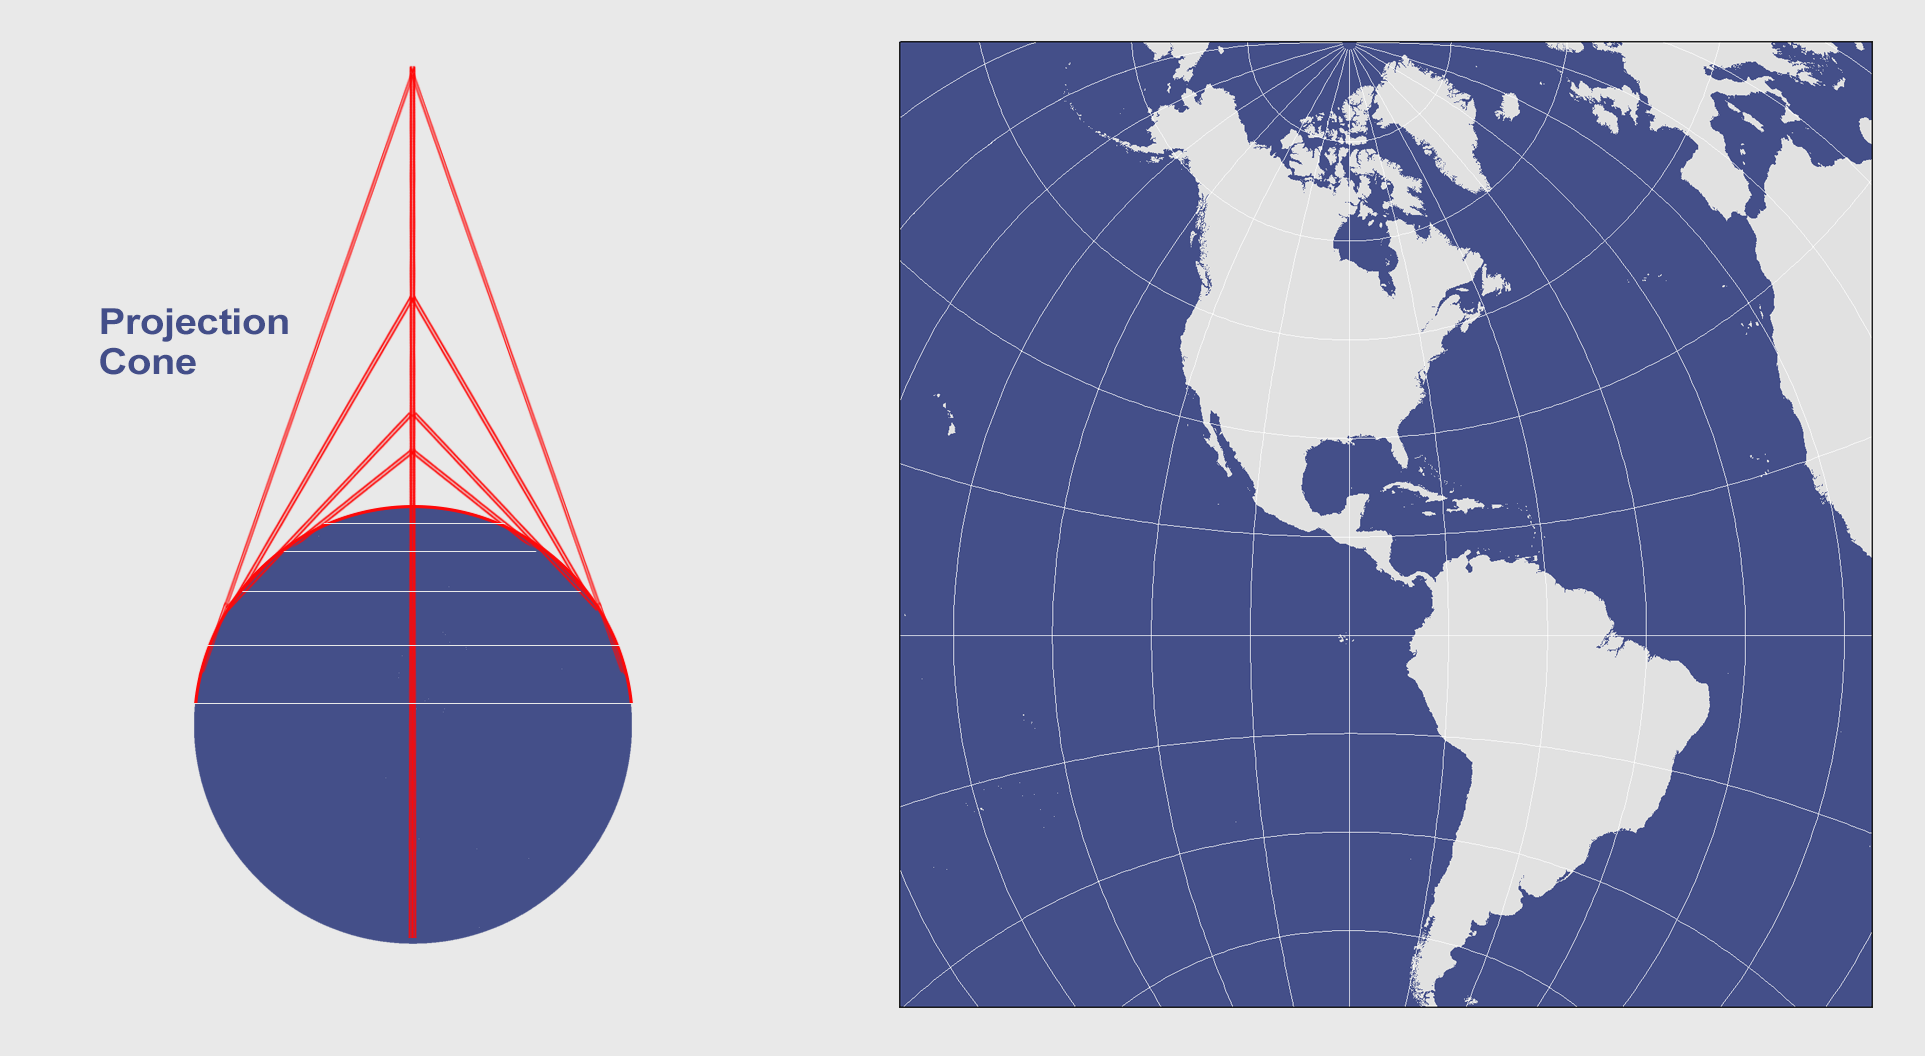 Polyconic Conic Projection